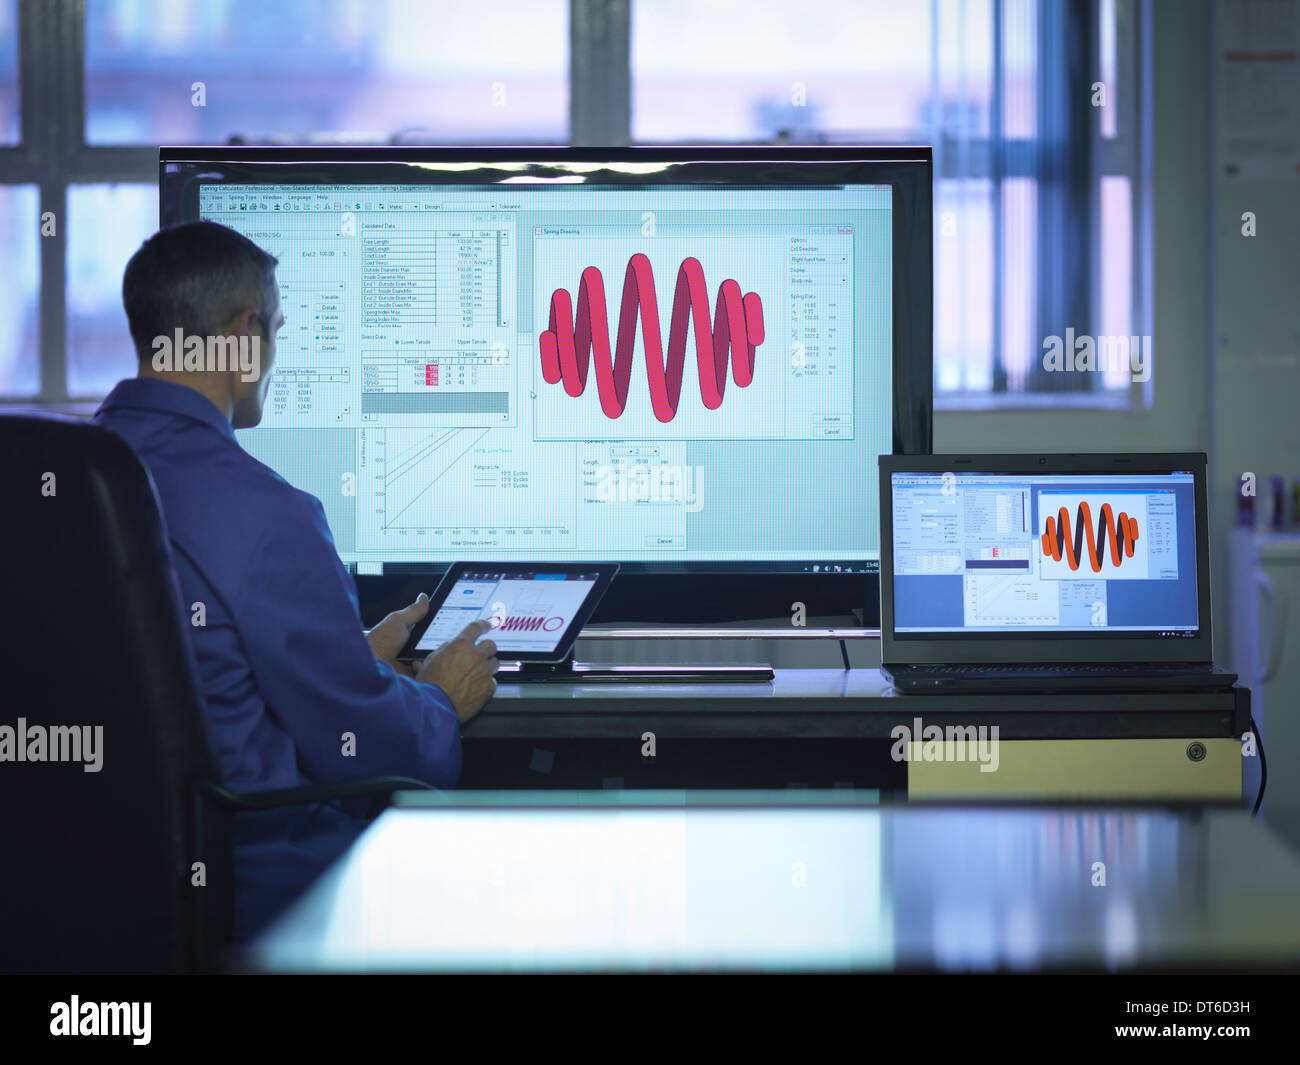 Worker using software to calibrate springs in office - Stock Image